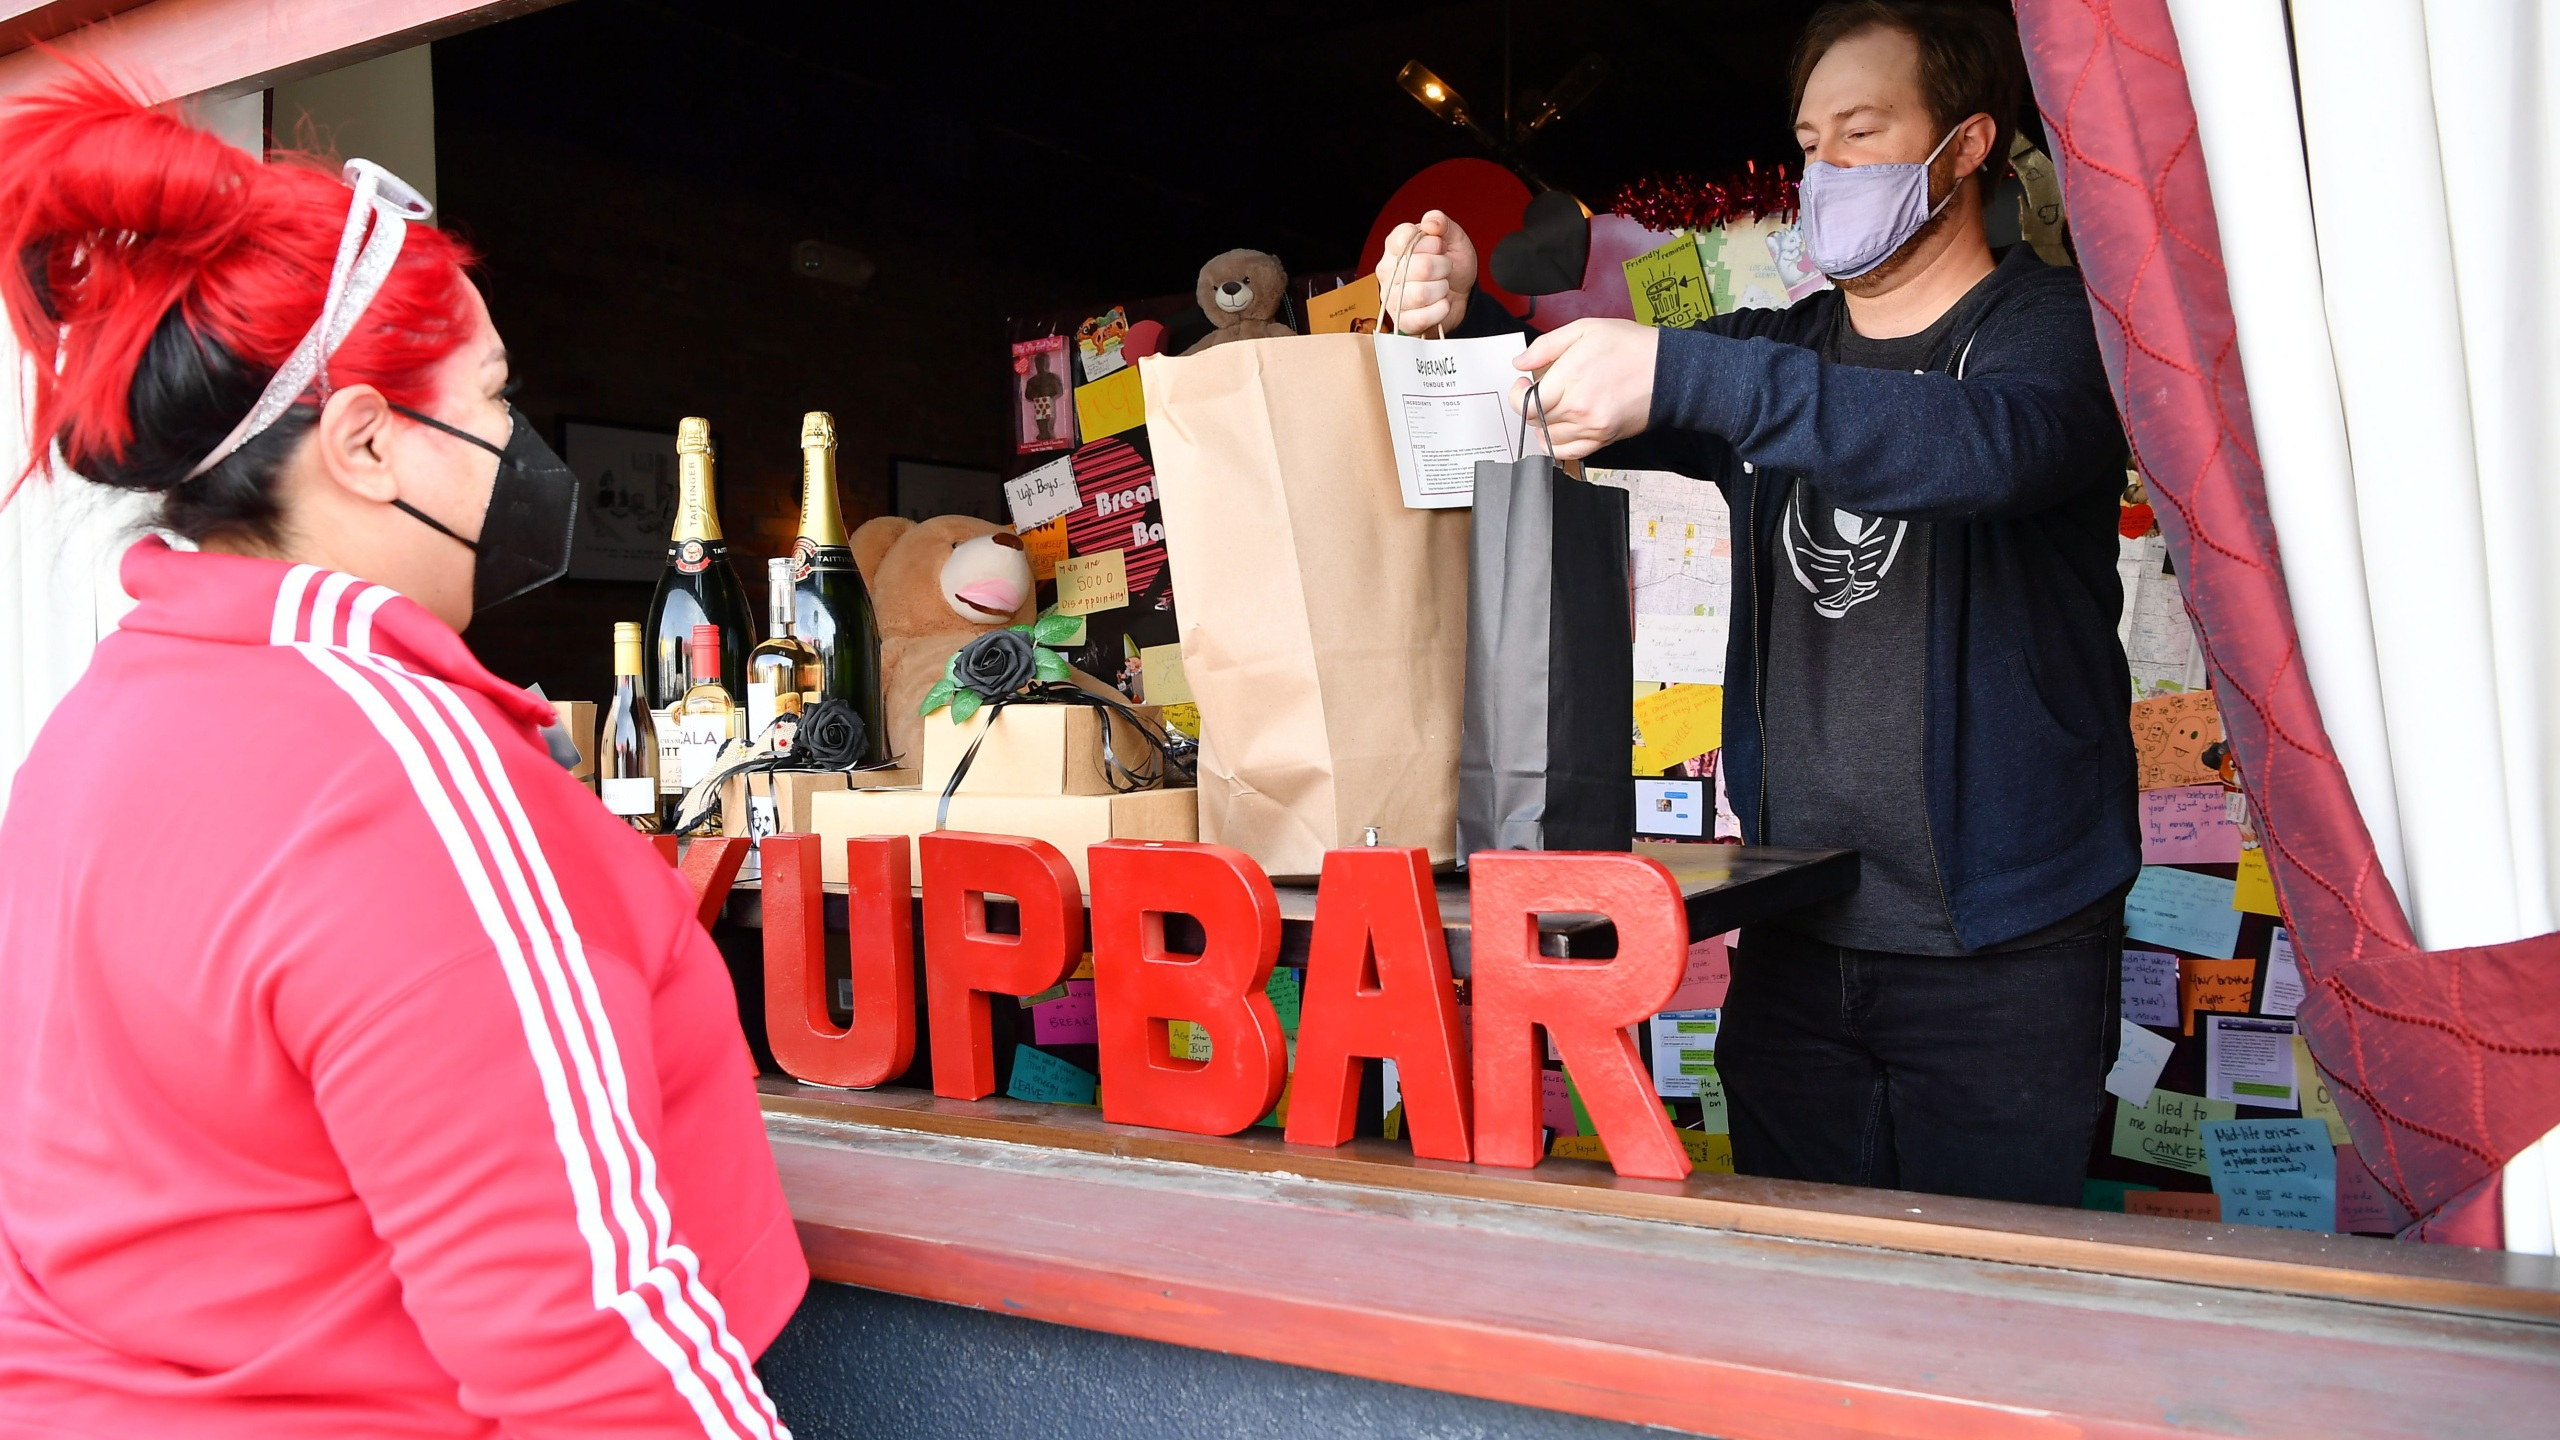 Owner Evan Charest helps a customer with her order at the Break Up Bar, which celebrated its 3-year anniversary on Valentine's Day on Feb. 13, 2021 in Los Angeles. (Amy Sussman/Getty Images)